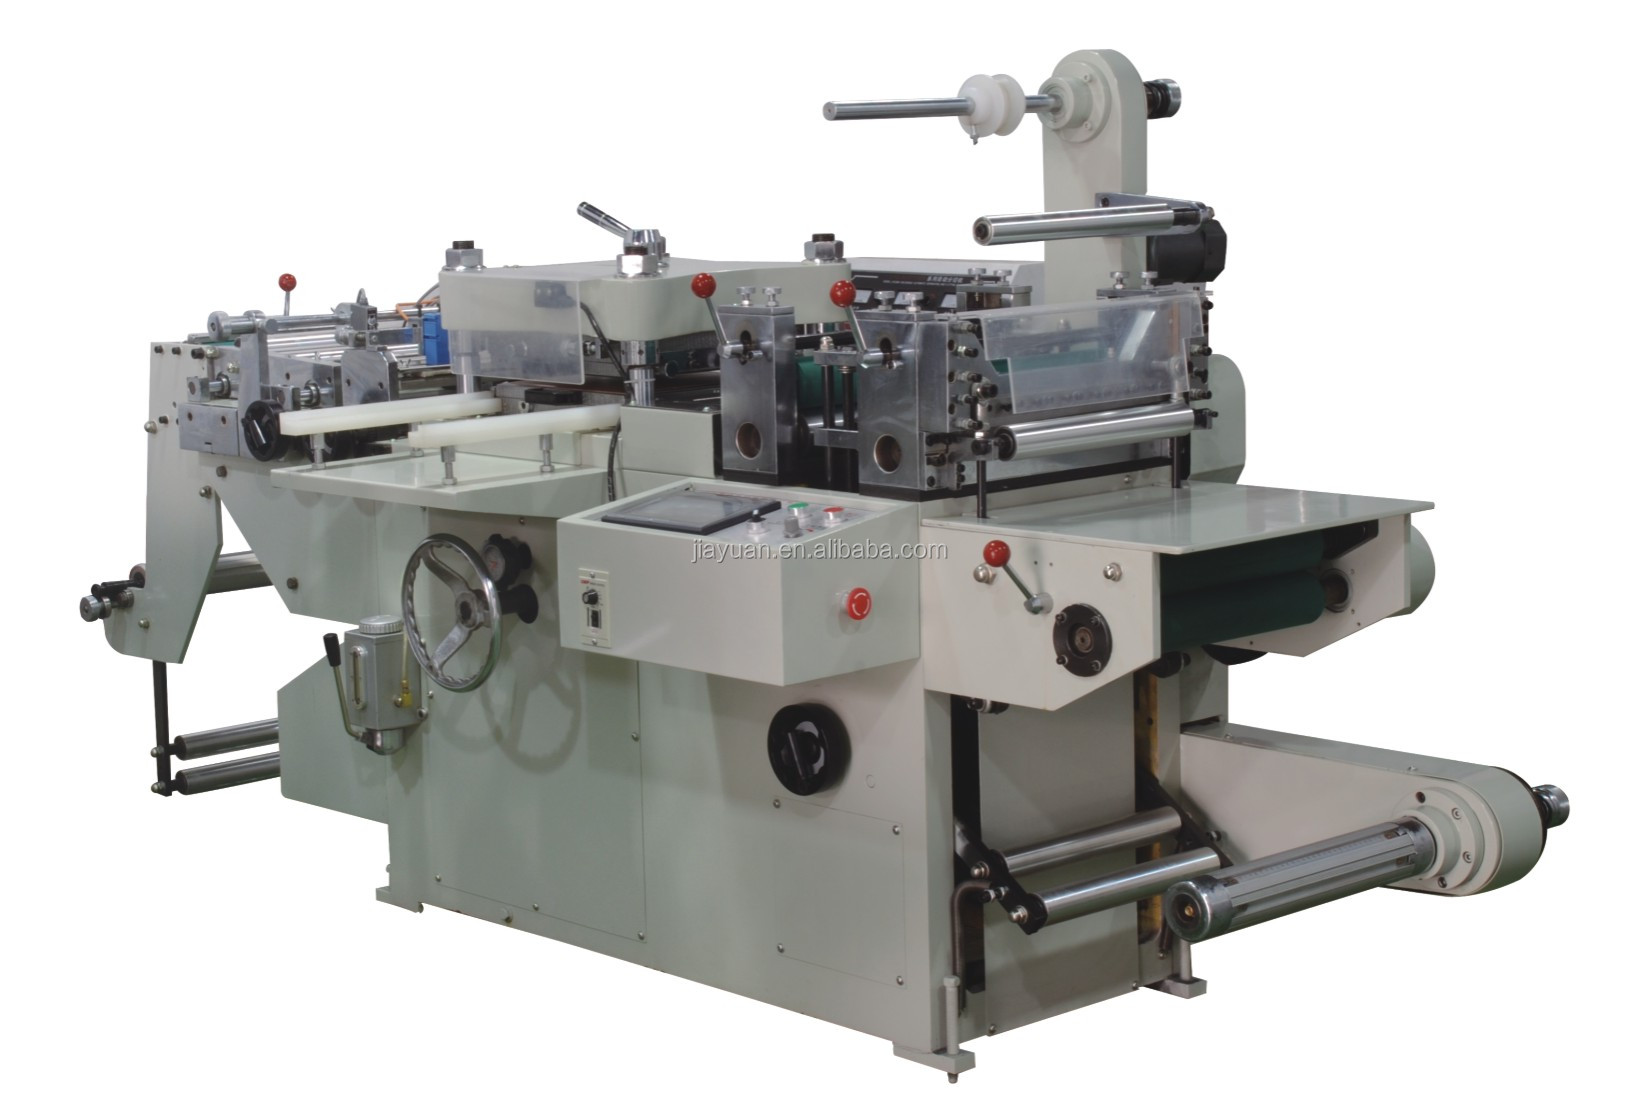 CE approved flat-bed die cutting machine with hot stamping device